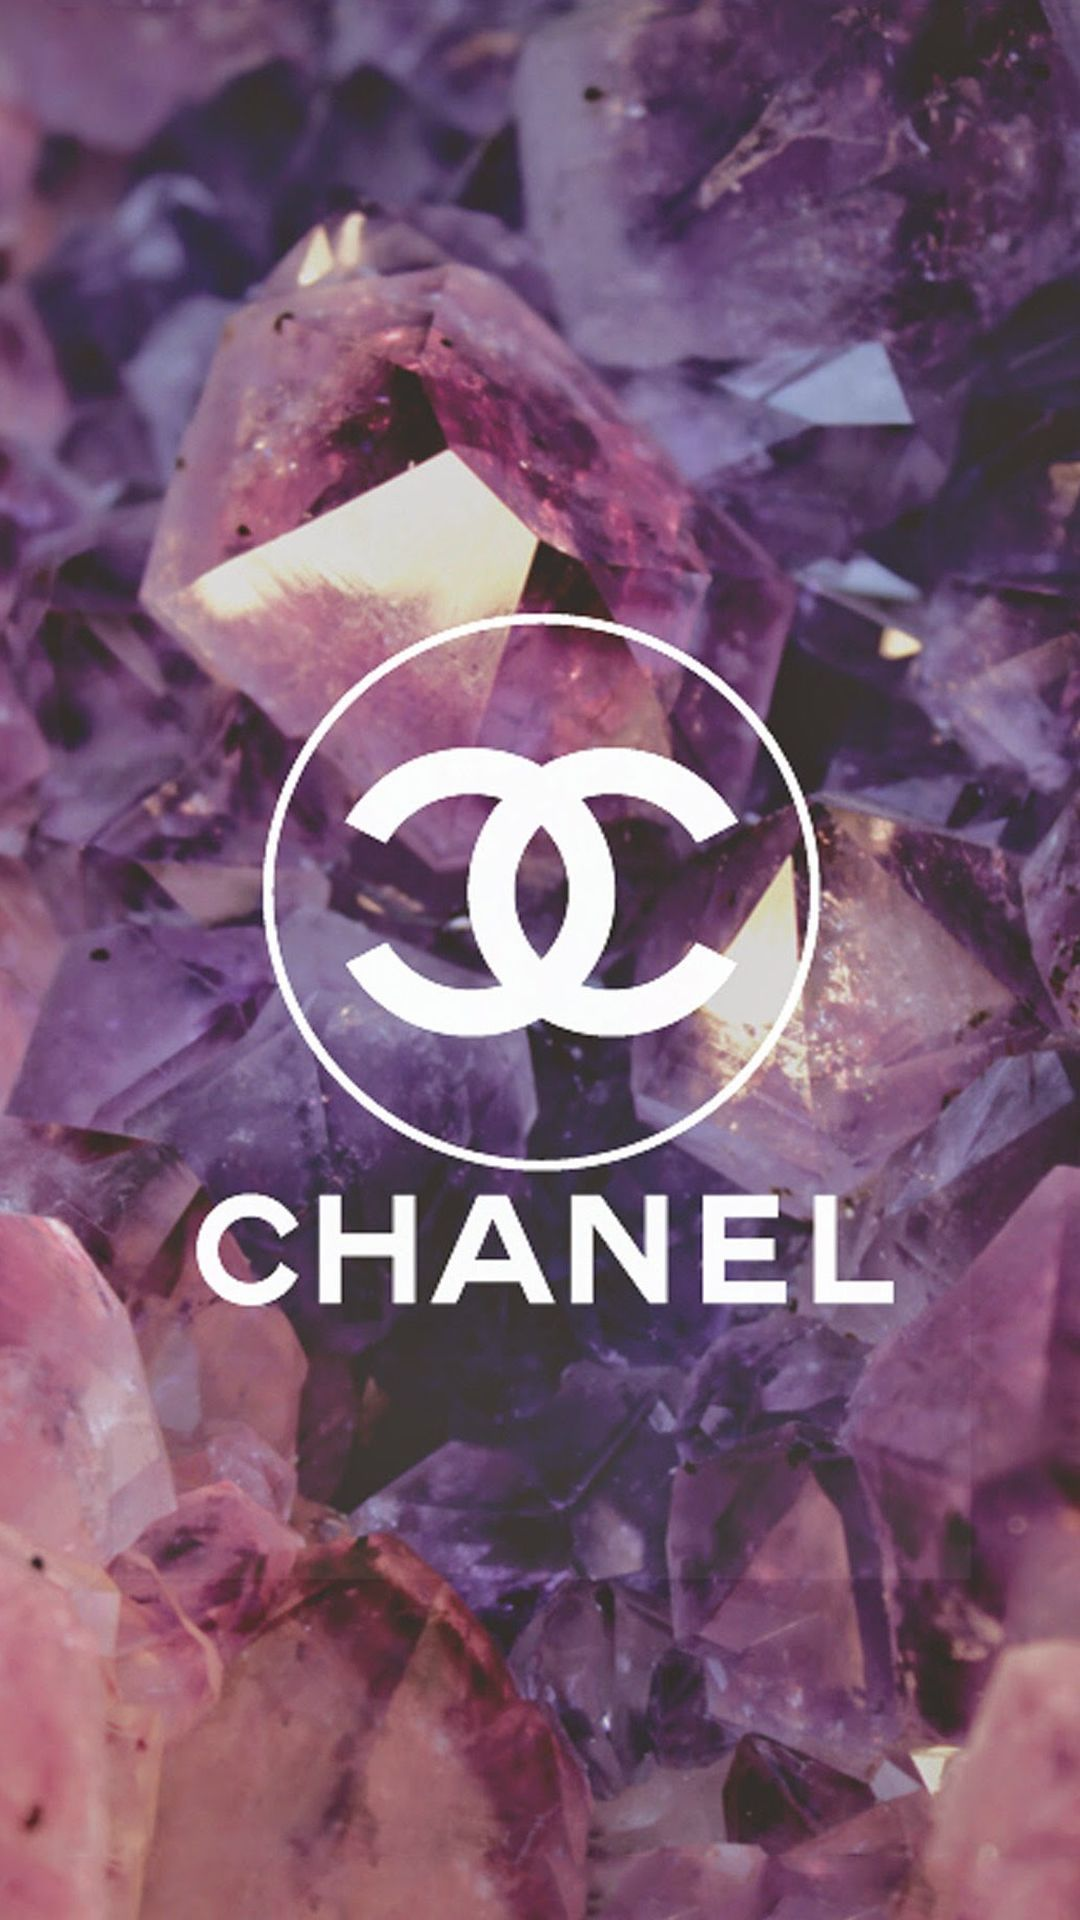 Iphone wallpaper tumblr chanel - Coco Chanel Logo Diamonds Iphone 6 Plus Hd Wallpaper Top 10 Brands Iphone Wallpapers